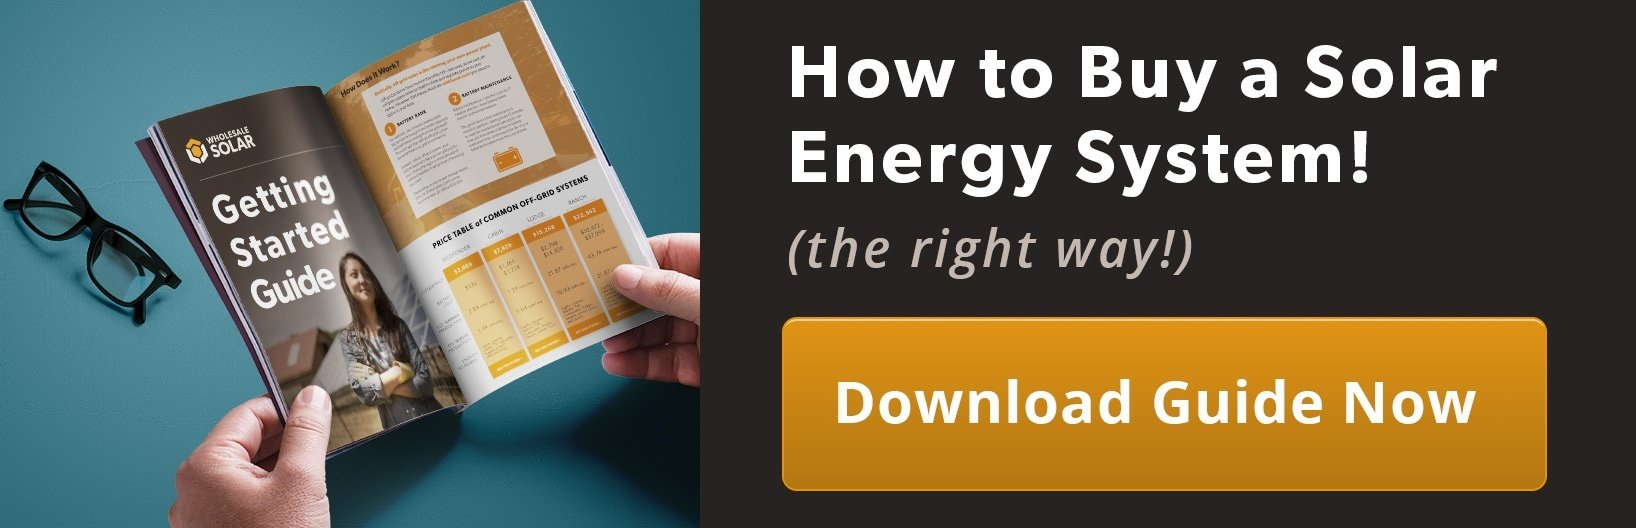 Click to download our guide to getting started with solar power